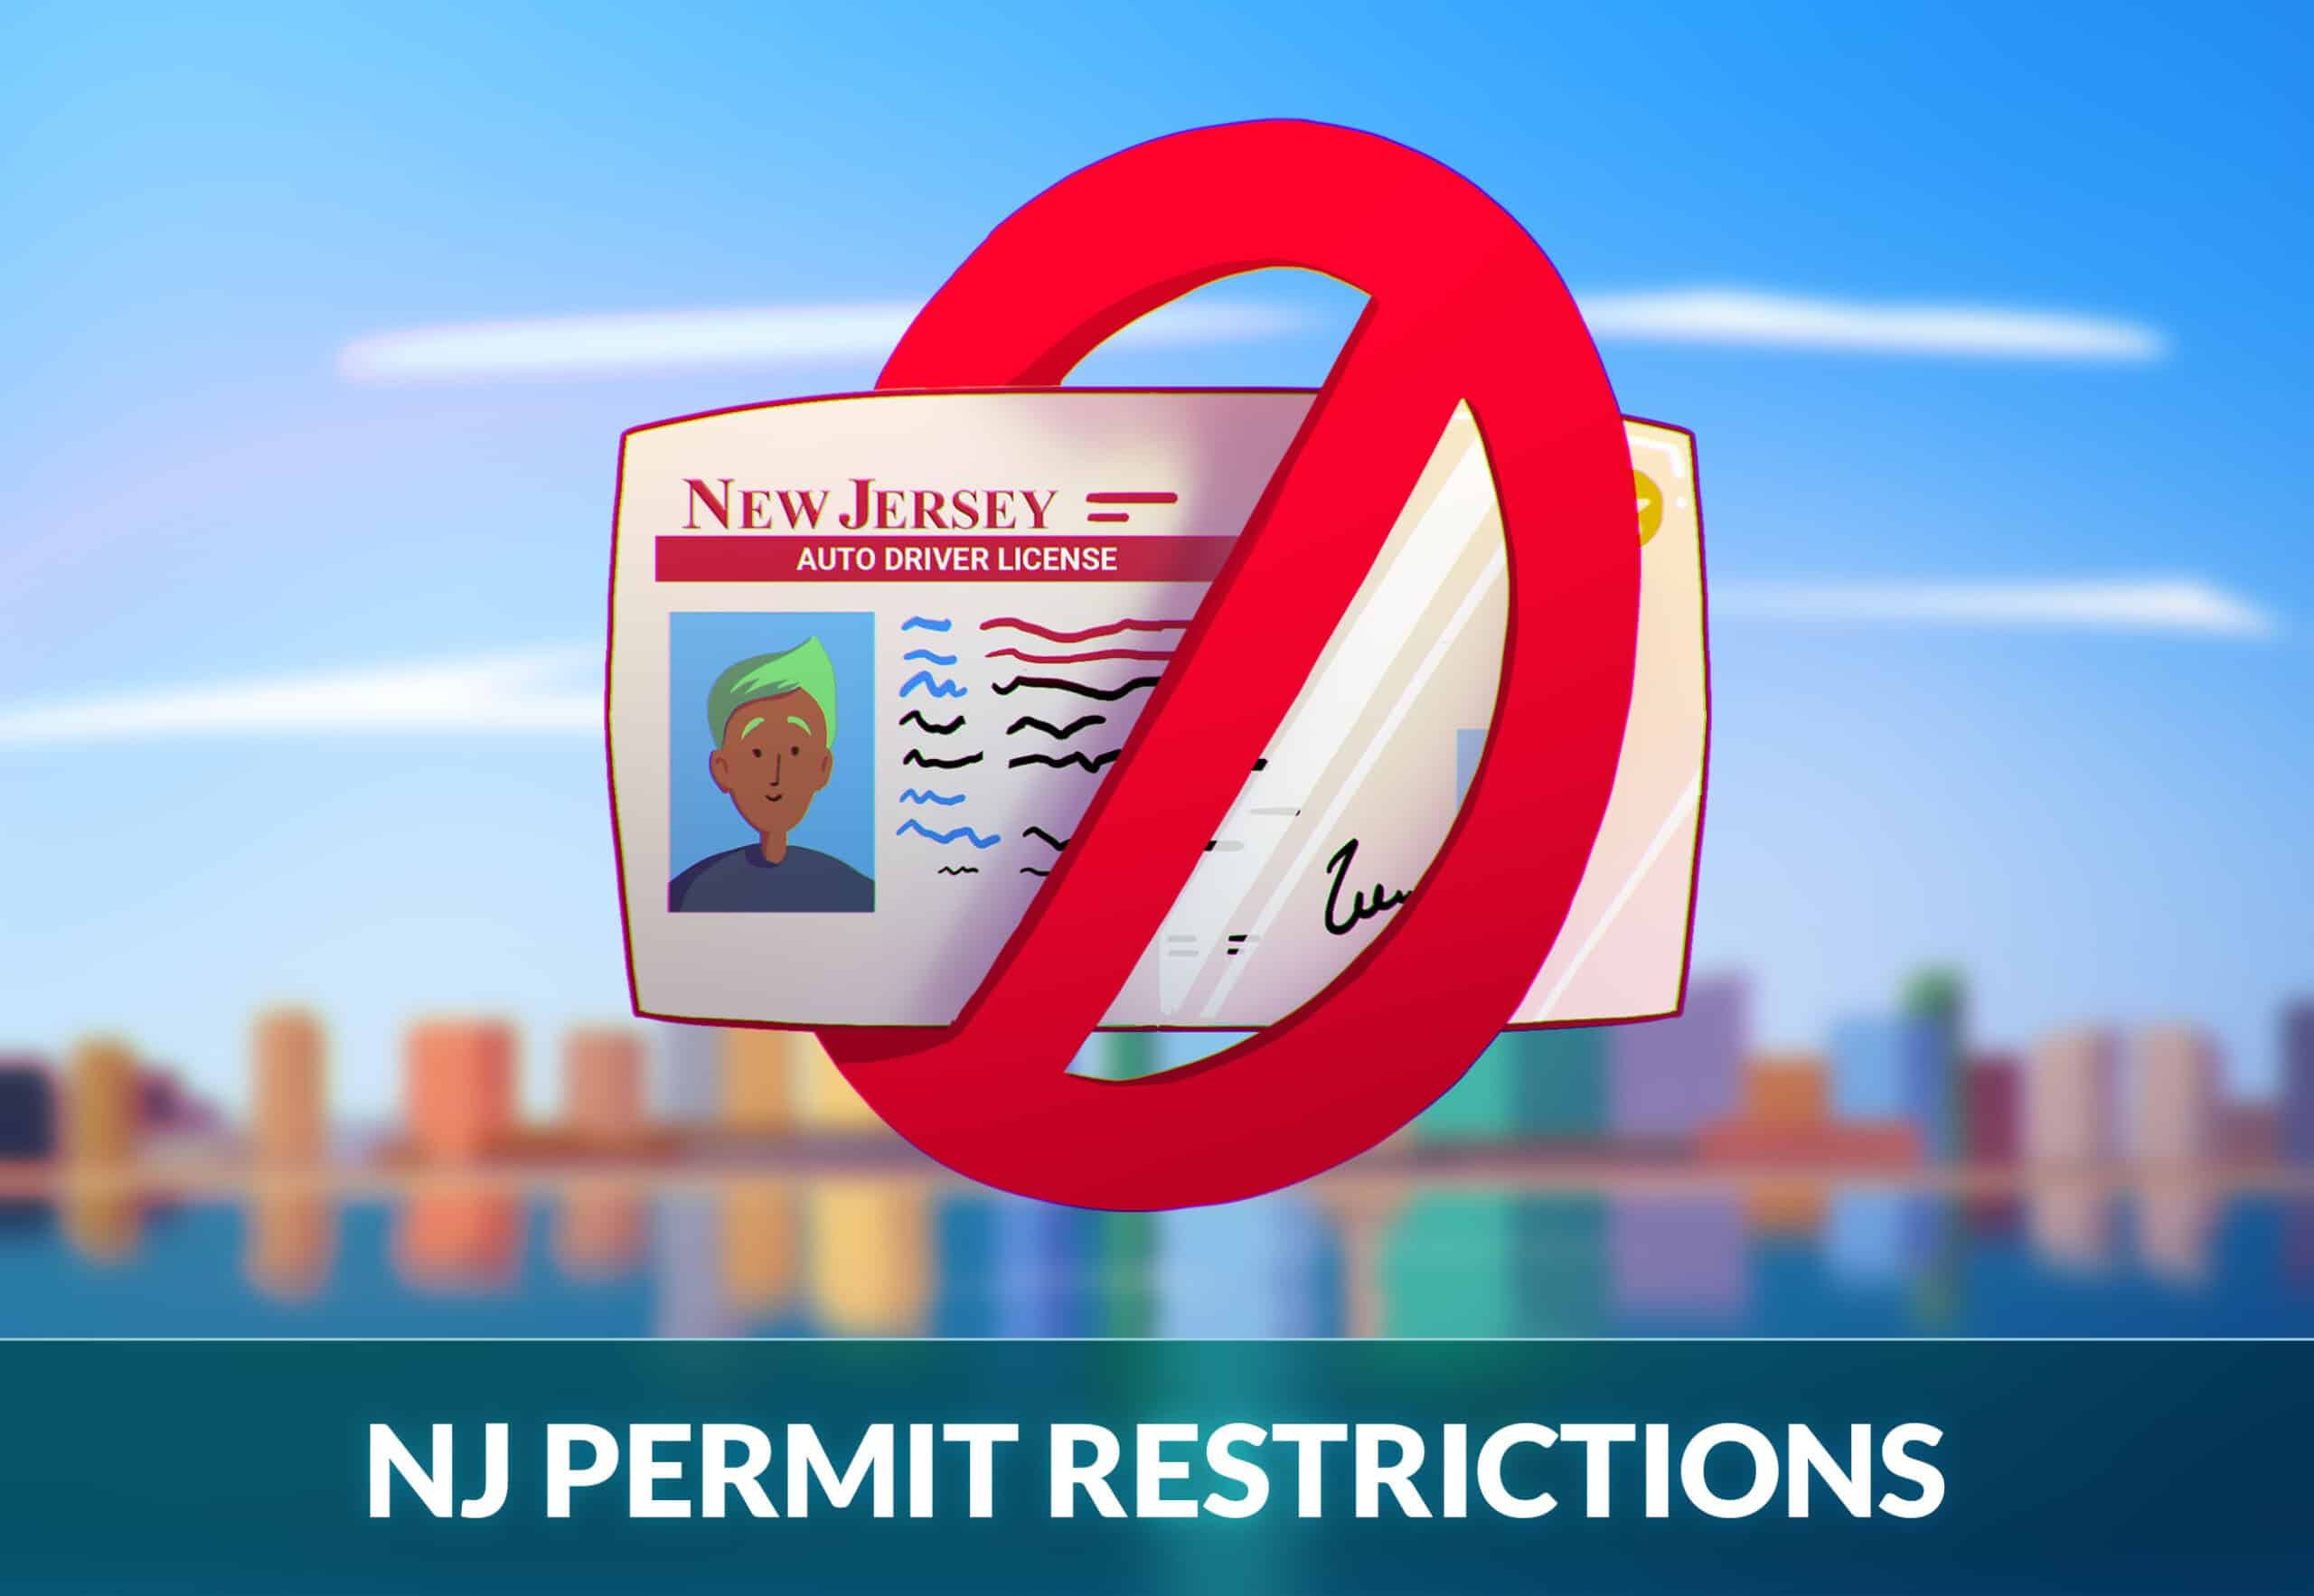 New jersey permit restrictions